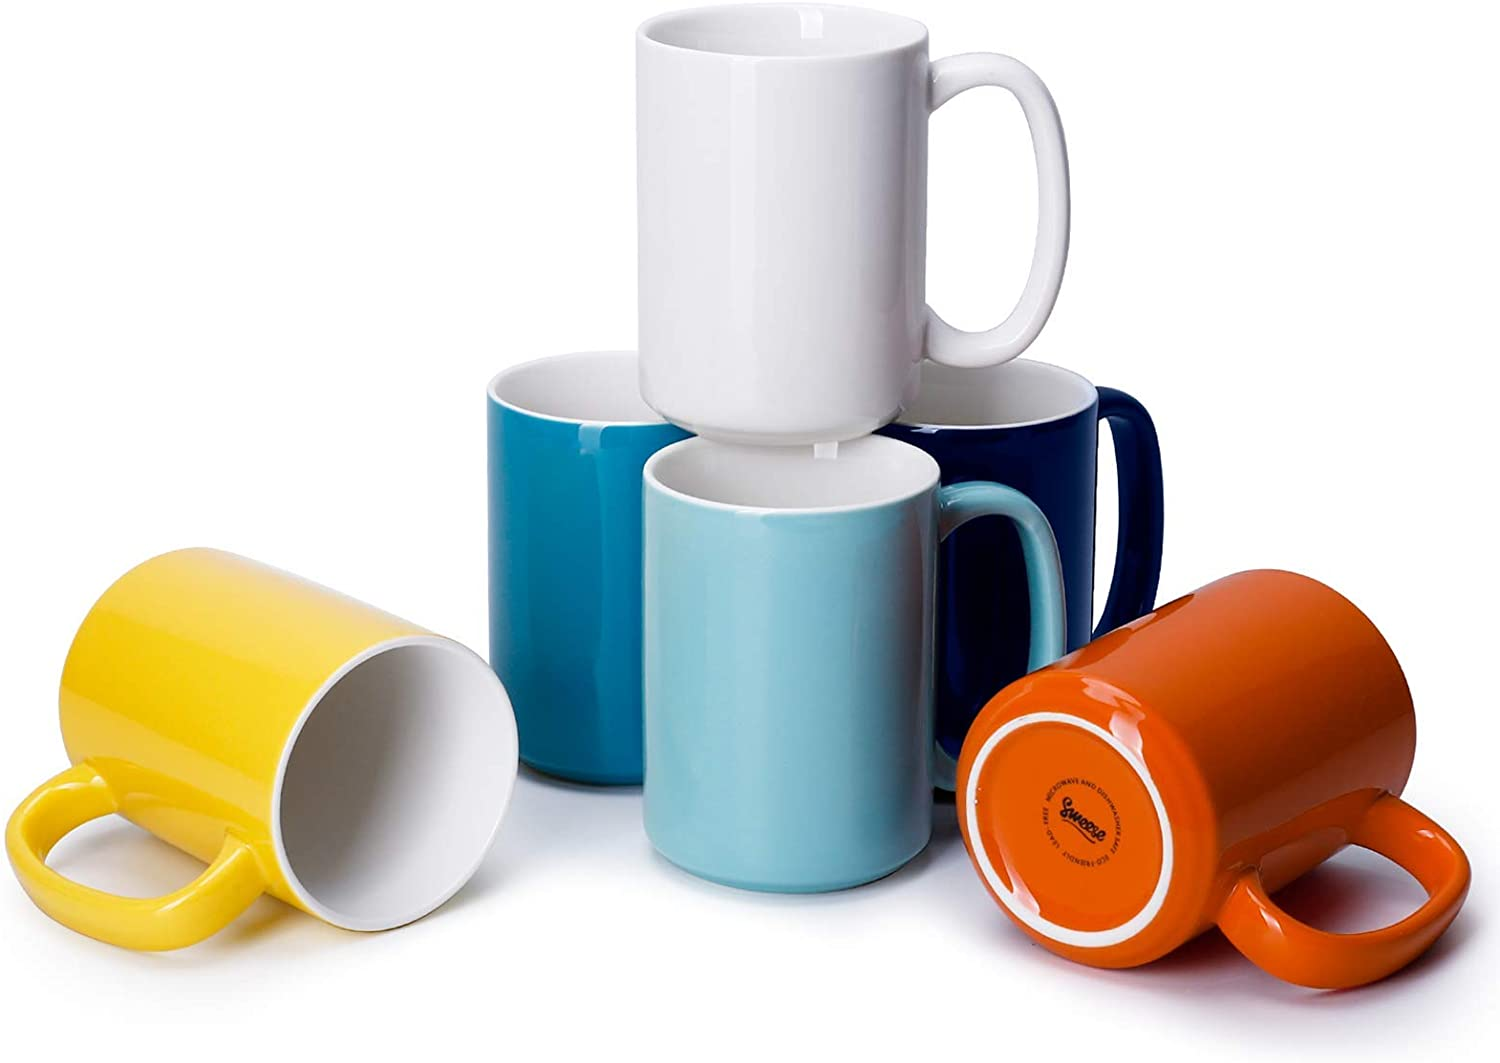 Sweese 608.002 Porcelain Mugs Set, 15 Ounce Large Handle Mugs, Set of 6, Hot Assorted colors